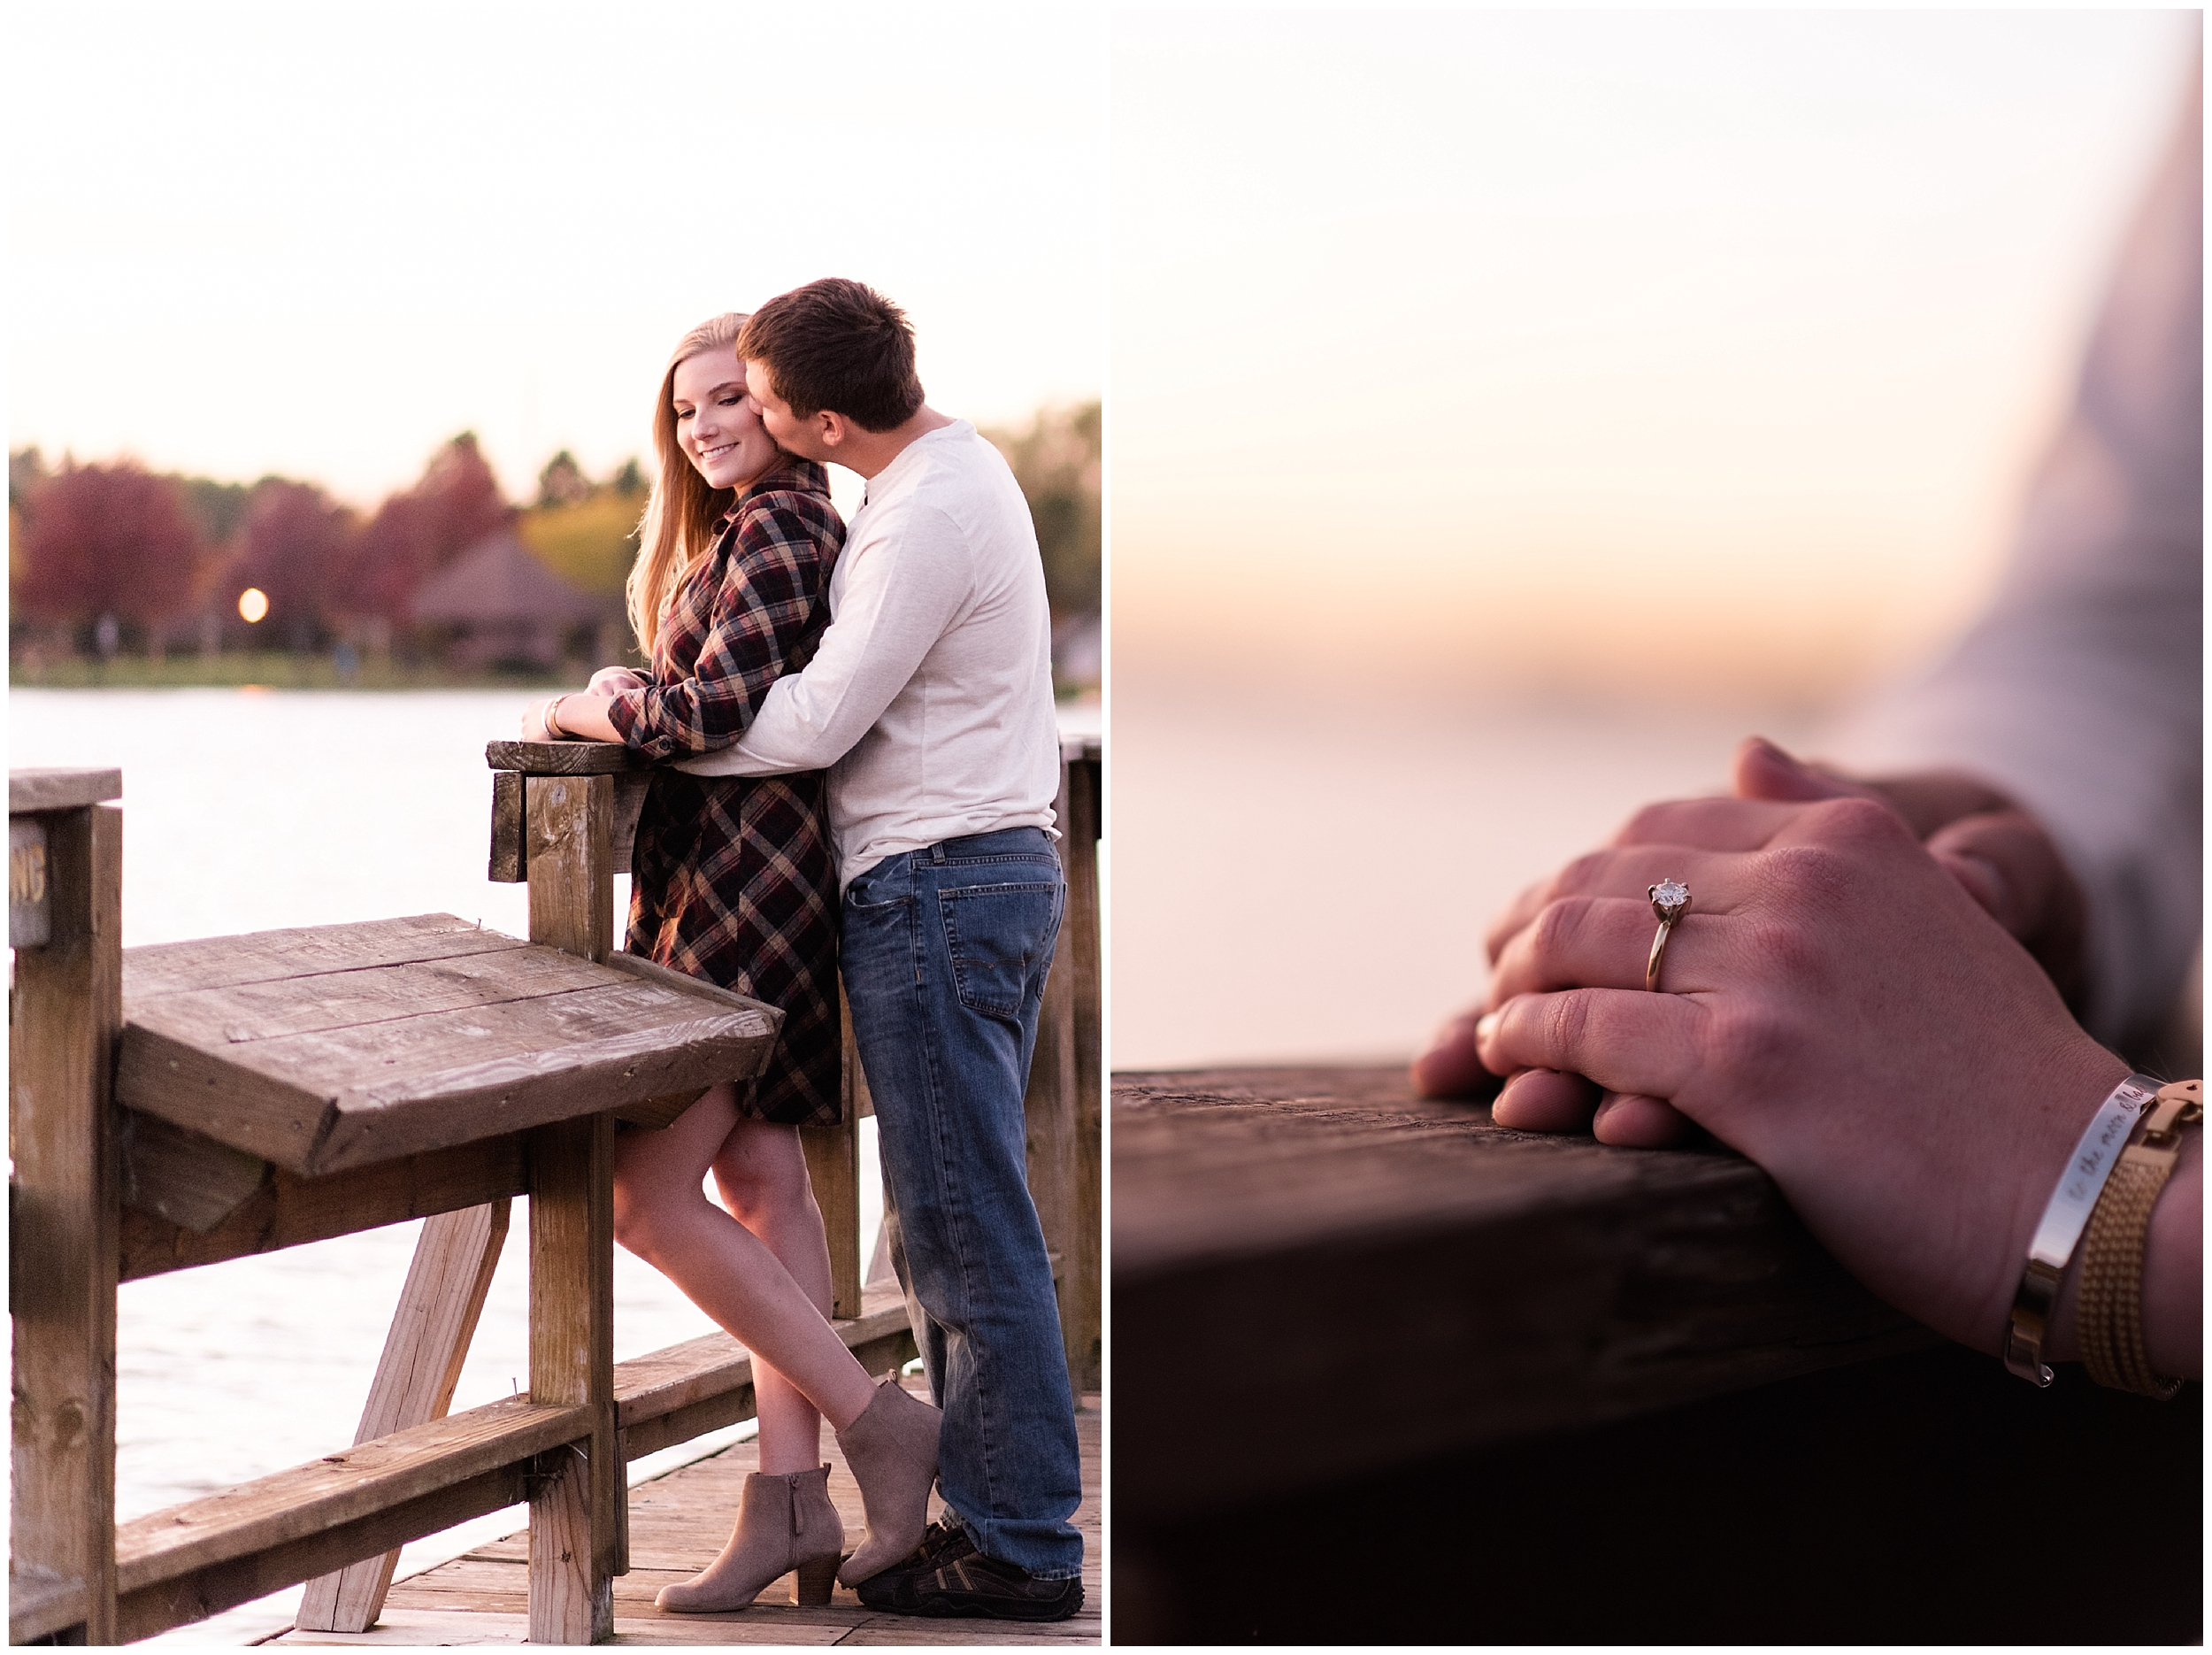 Weddings_by_Raisa_Photography_Cadillac_Michigan_October_Fall_Engagement_Milwaukee_Wisconsin_Photographer_0025.jpg